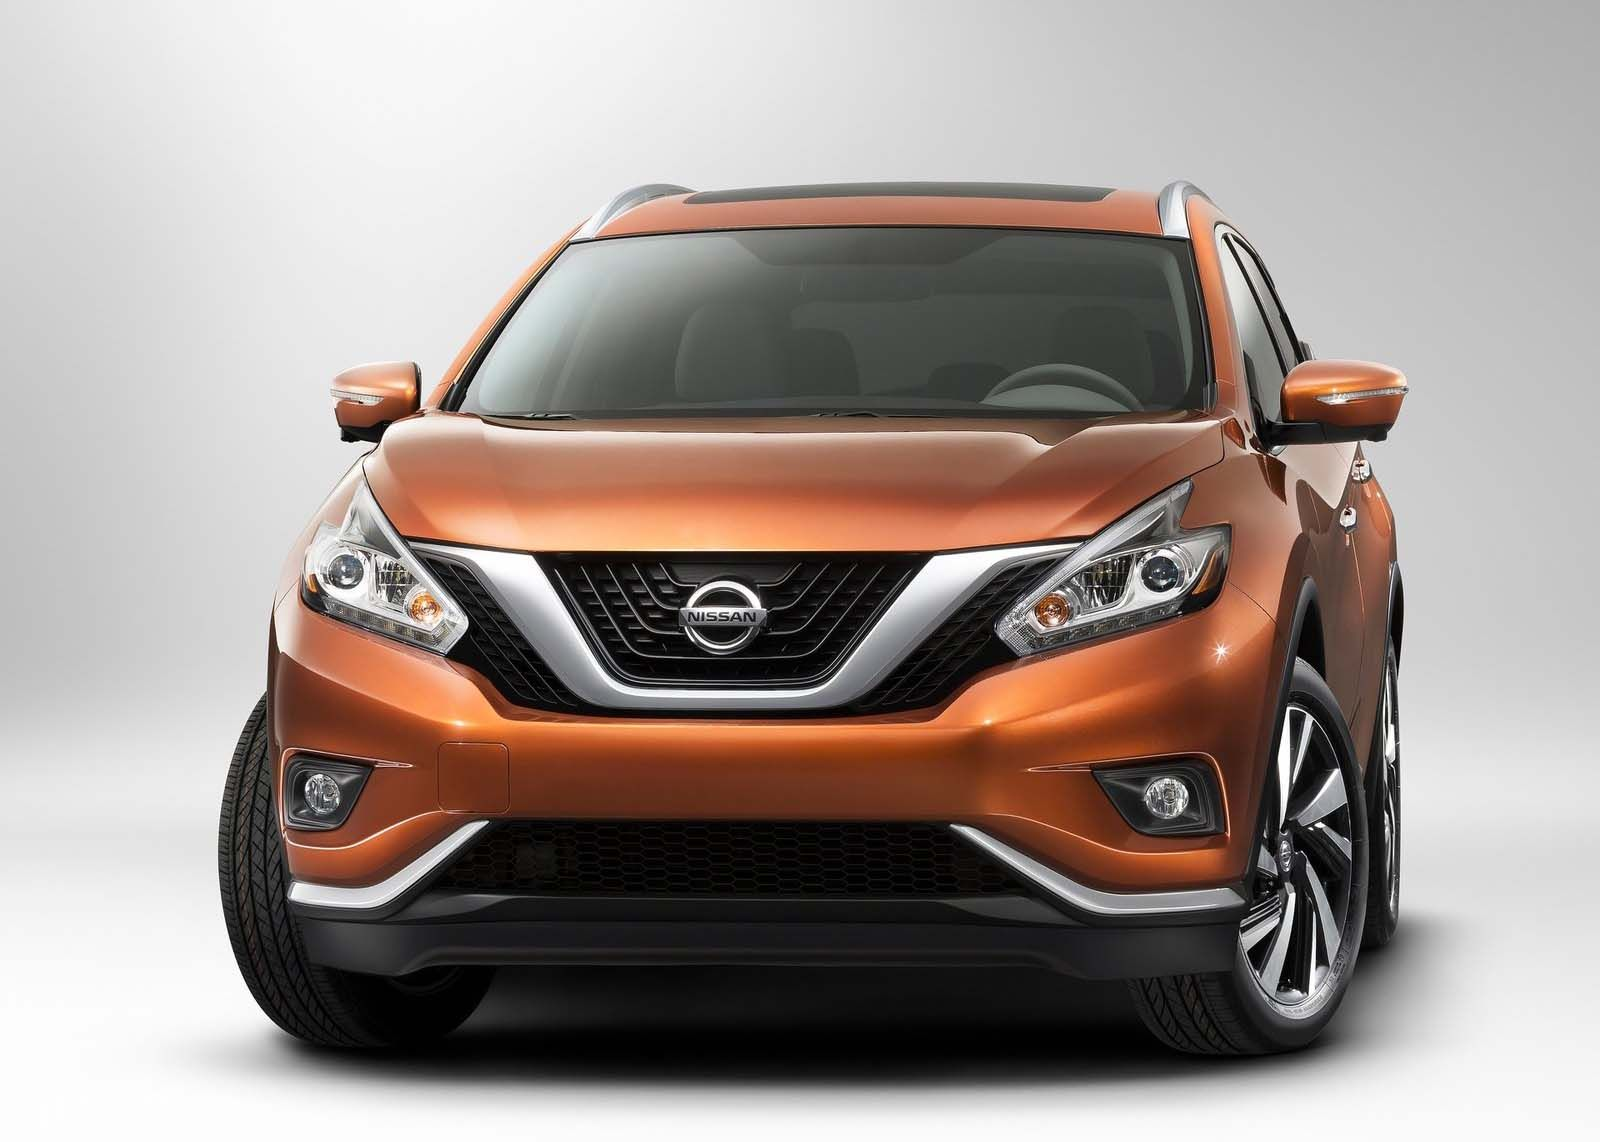 Cool All-New 2015 Nissan Murano